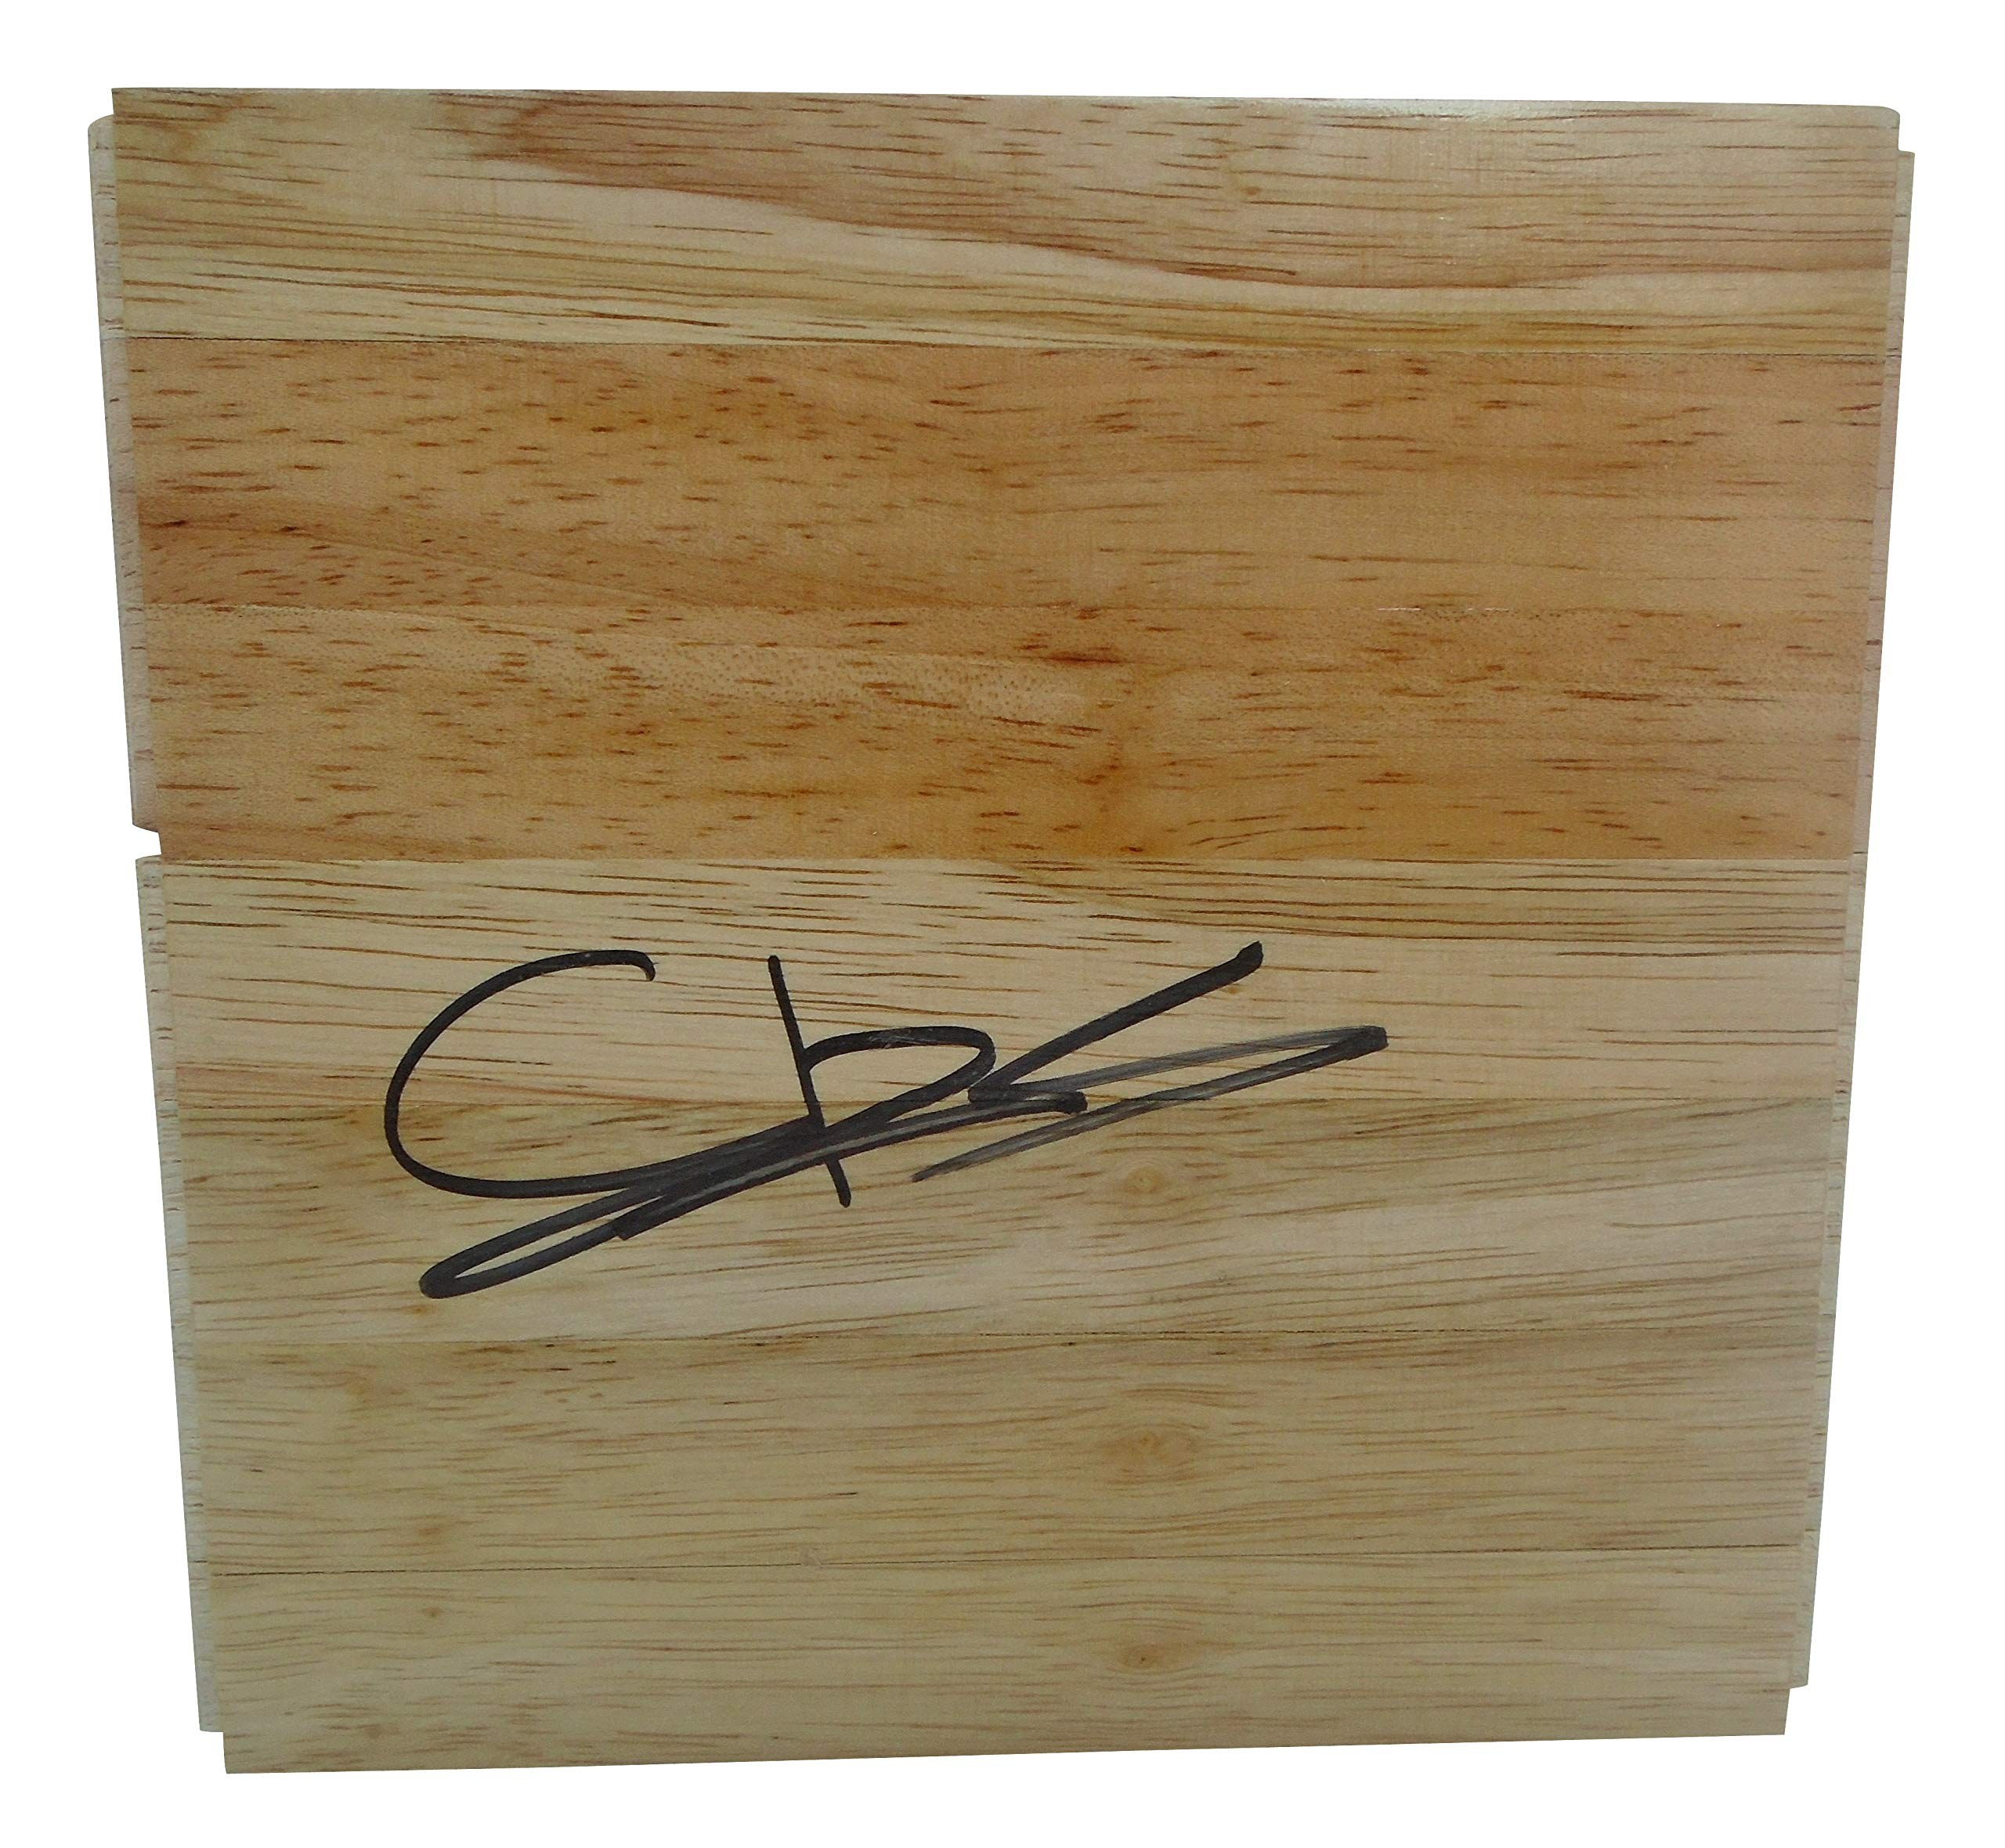 Dallas Wings Skylar Diggins Smith Autographed Hand Signed 6x6 Parquet Floorboard with Proof Photo, Team USA, Notre Dame Fighting Irish, COA Basketball Floor